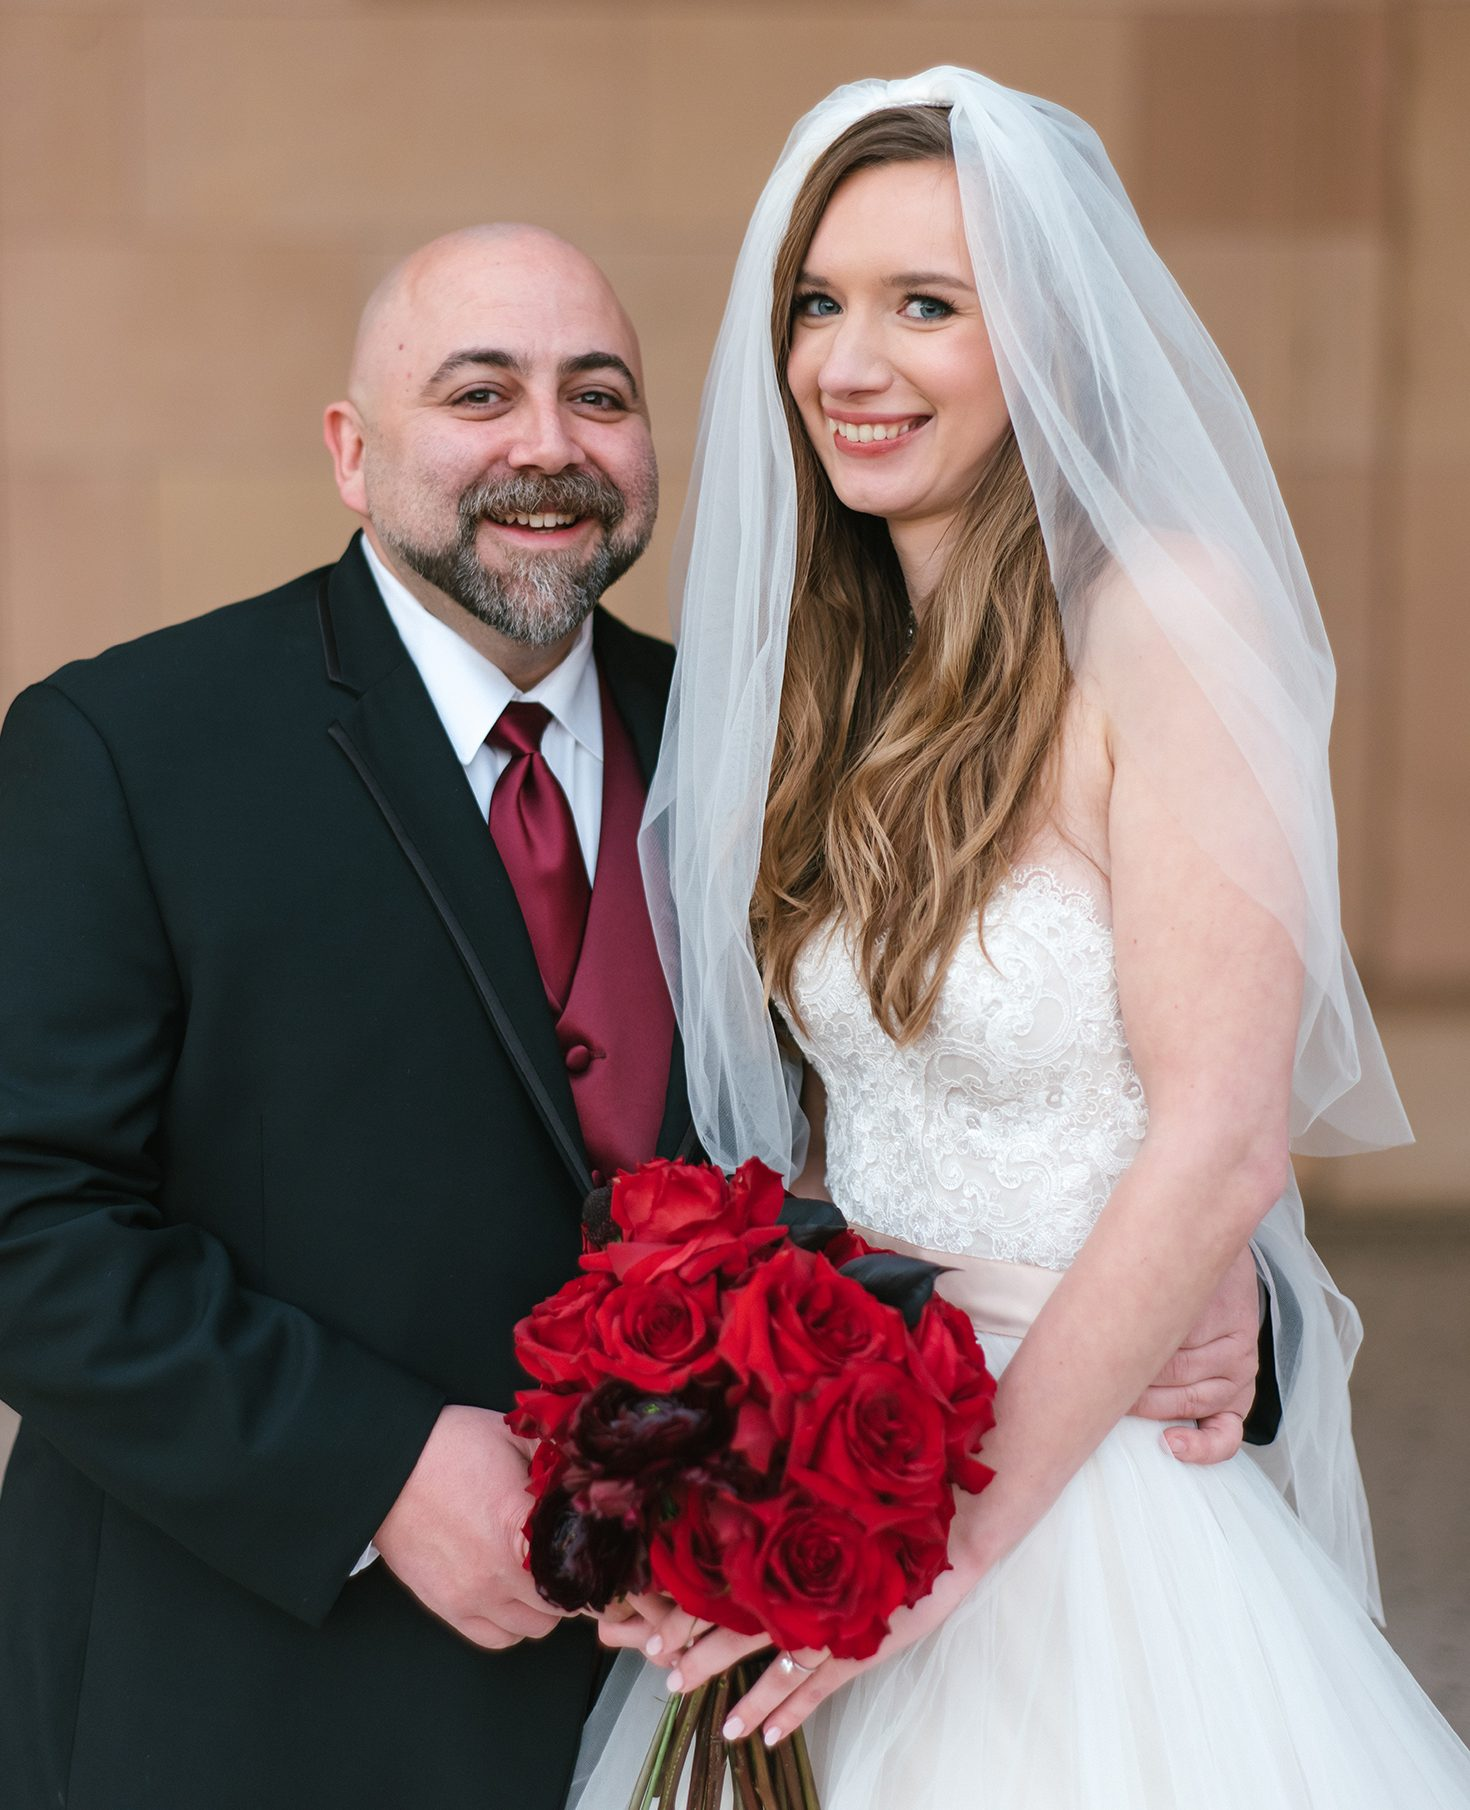 duff-goldman-wedding-couple-close-up-0119-e1548256765764.jpg